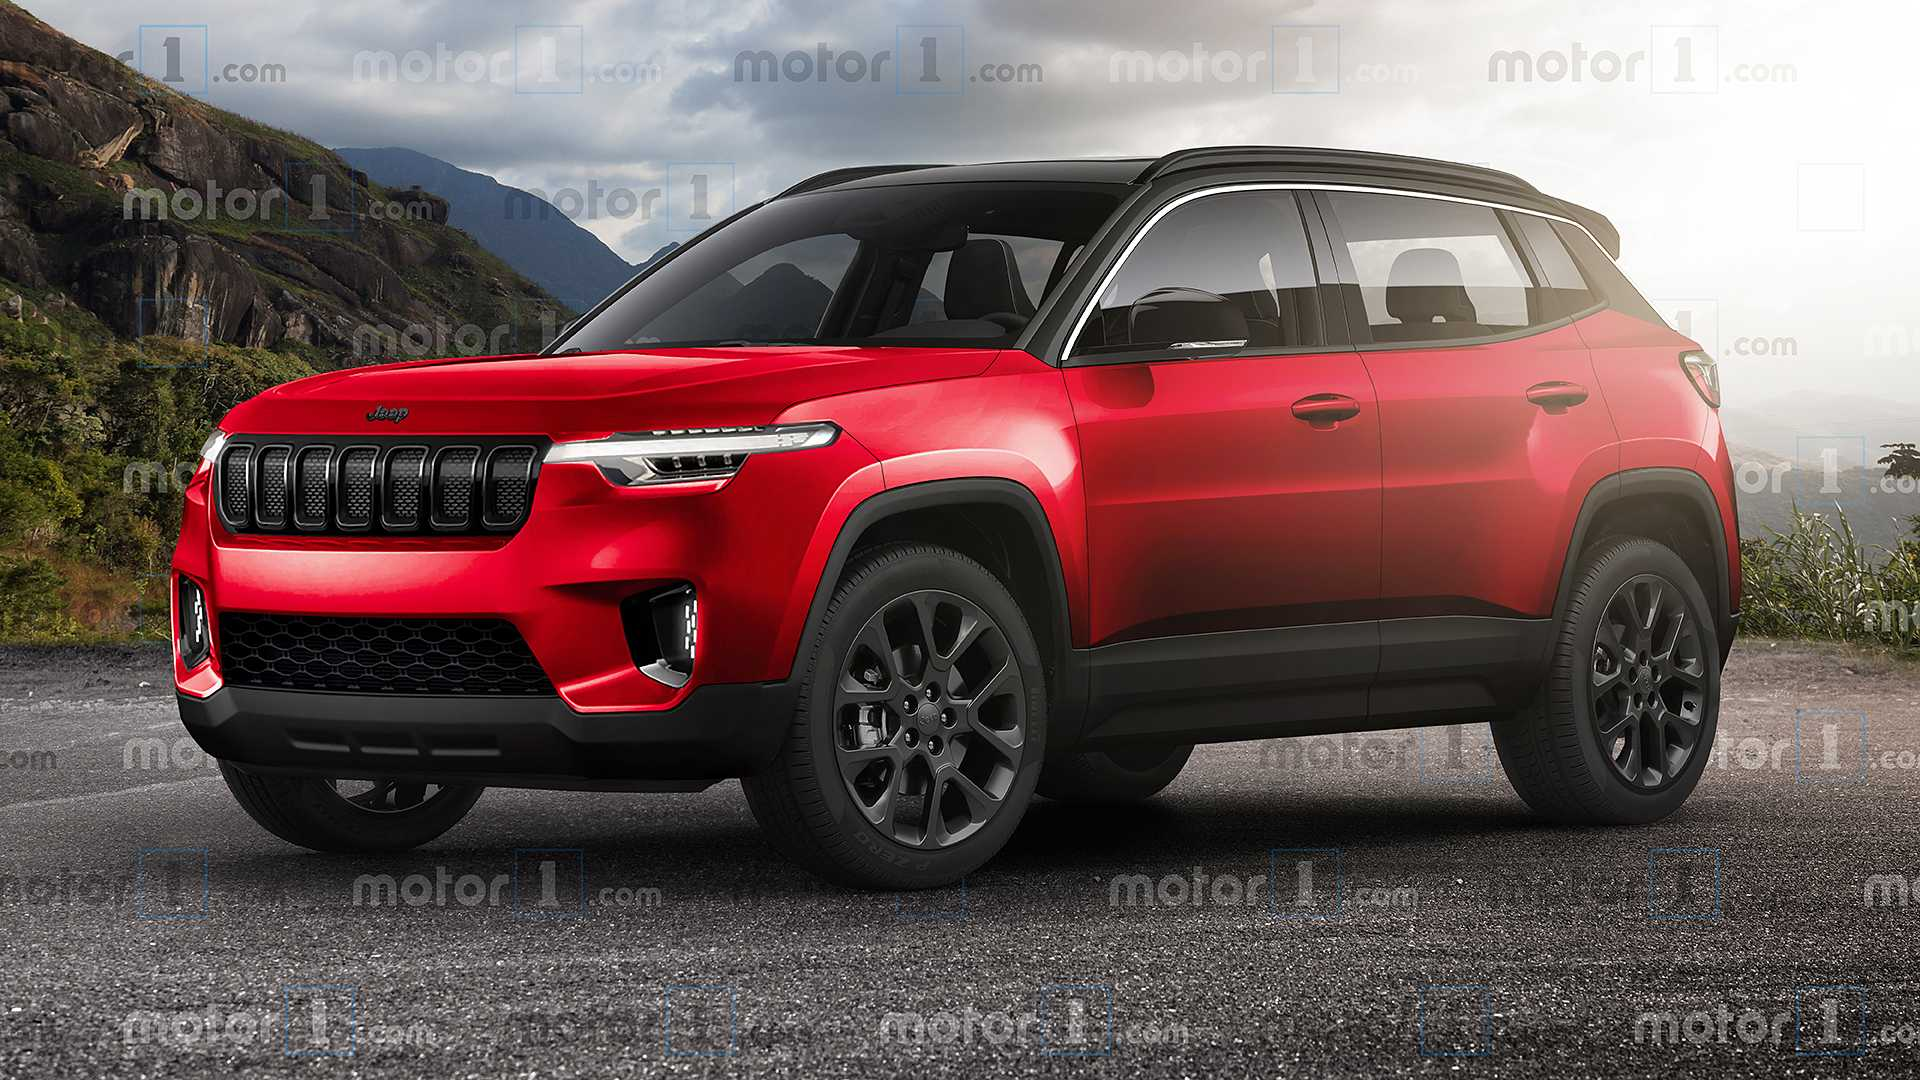 2022 Jeep Baby SUV: This Is What It Could Look Like